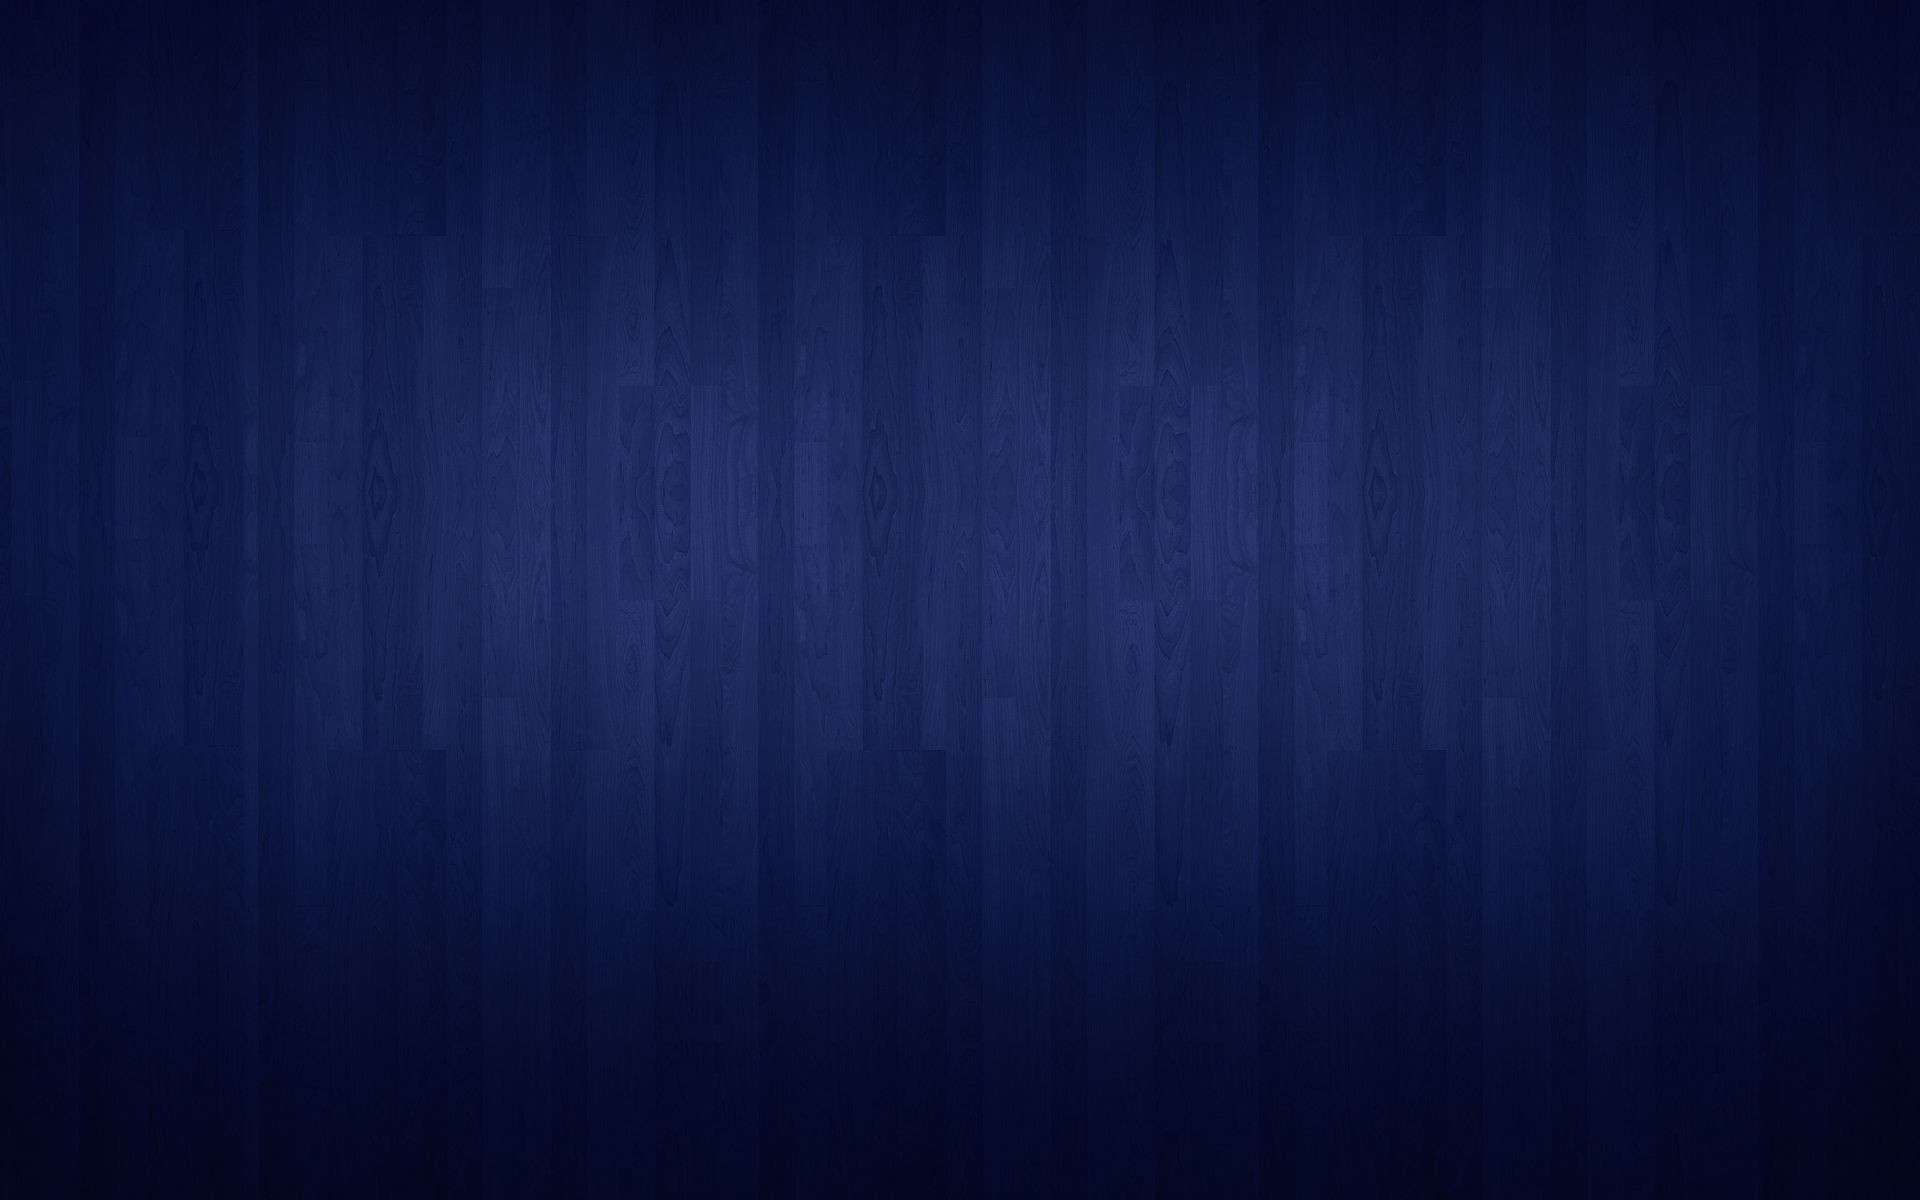 Wallpapers For > Navy Blue Background · Wallpapers For > Navy Blue  Background free powerpoint background